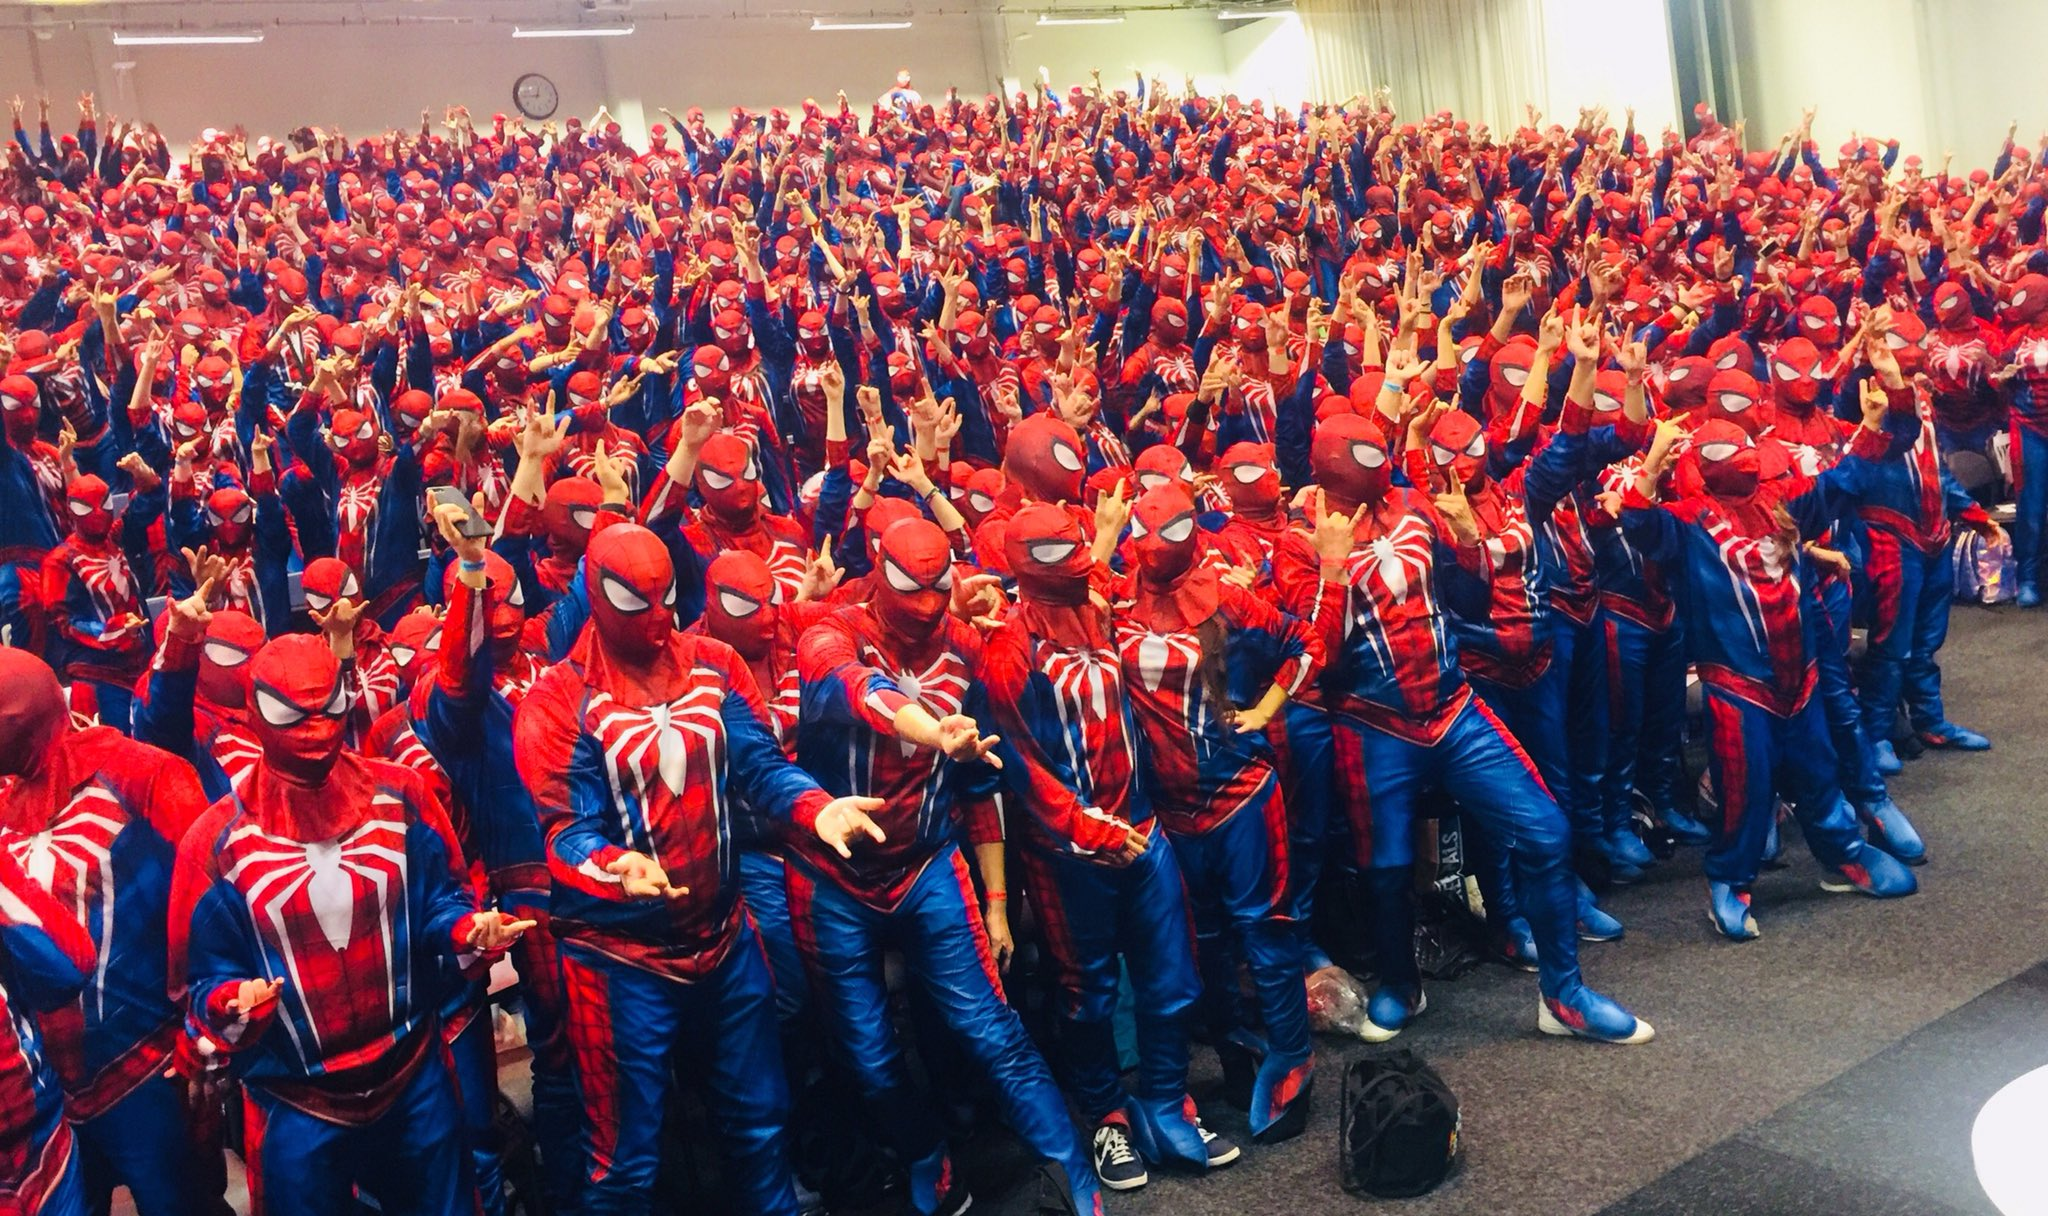 Marvel And Sony Break World Record For Largest Gathering Of Costumed Spider Men VG247